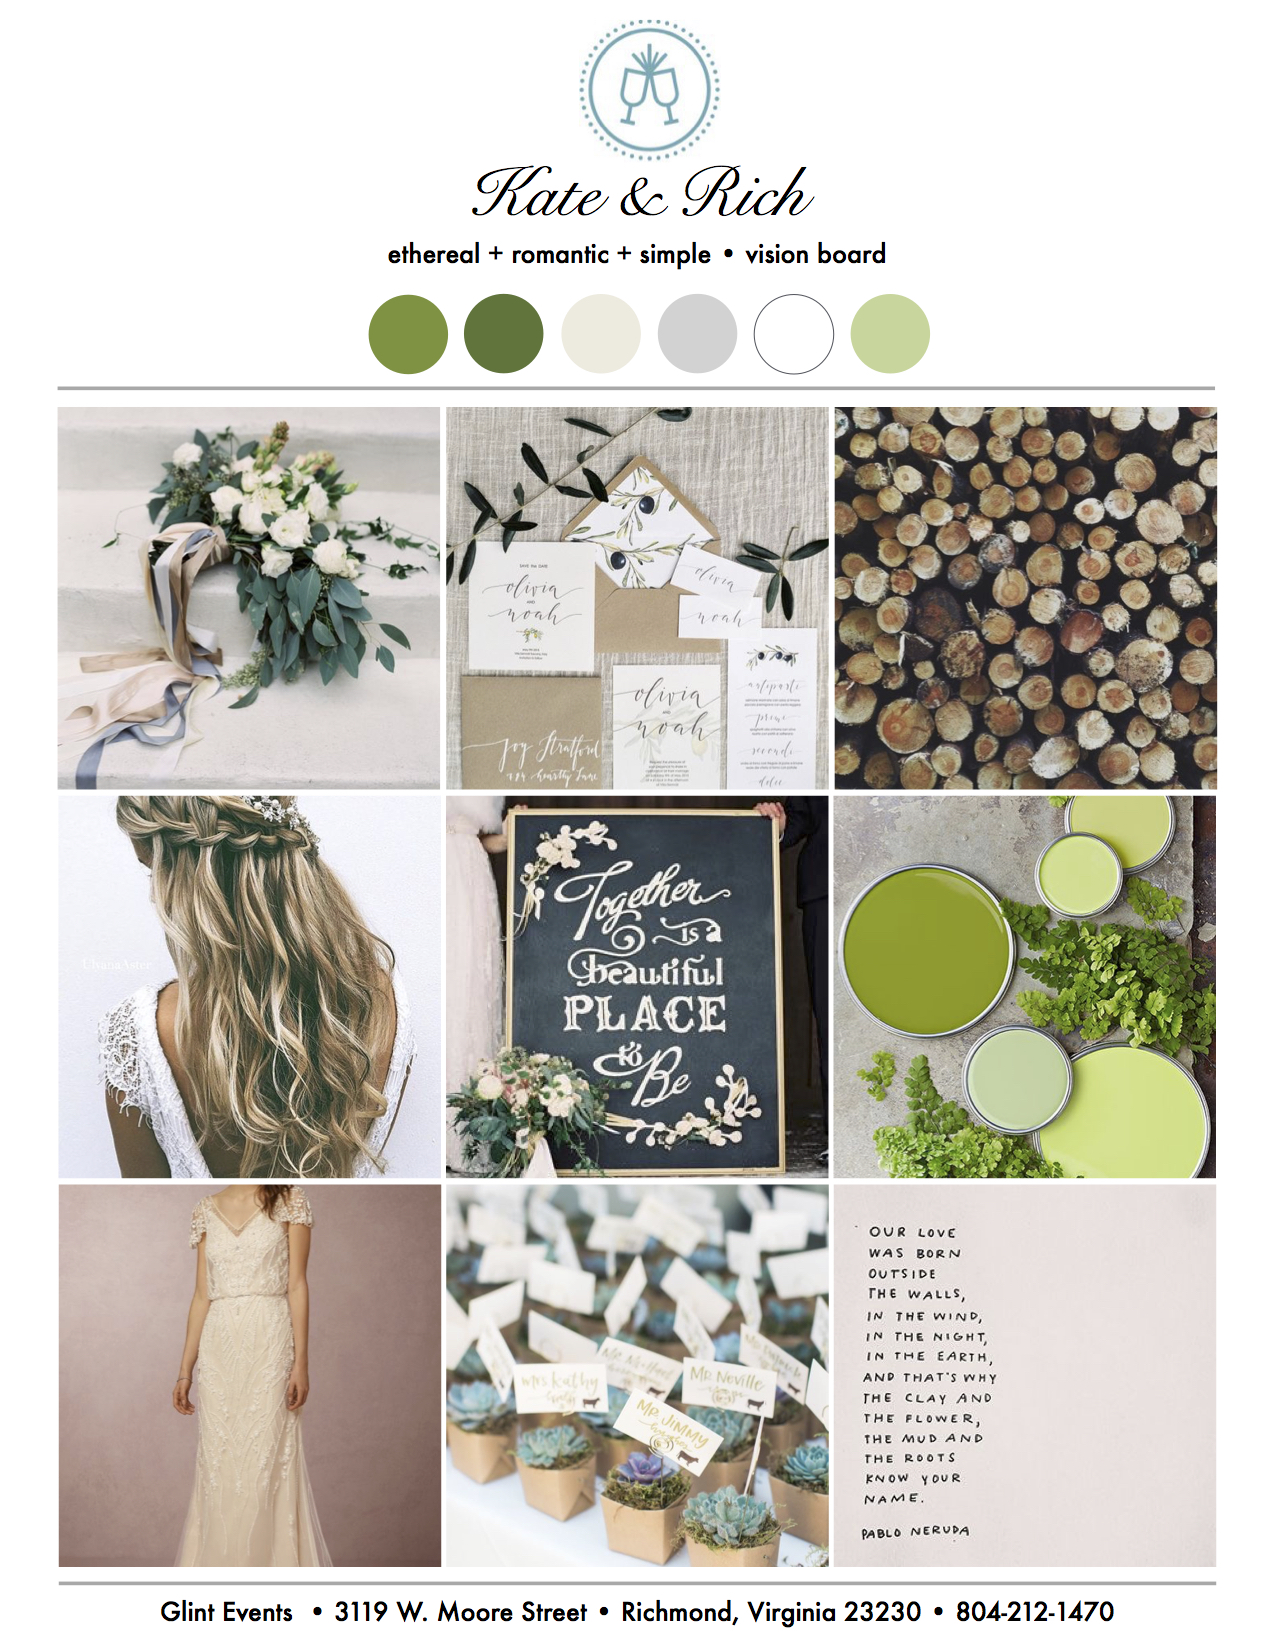 Glint Events Glintspiration Wedding Vision Board